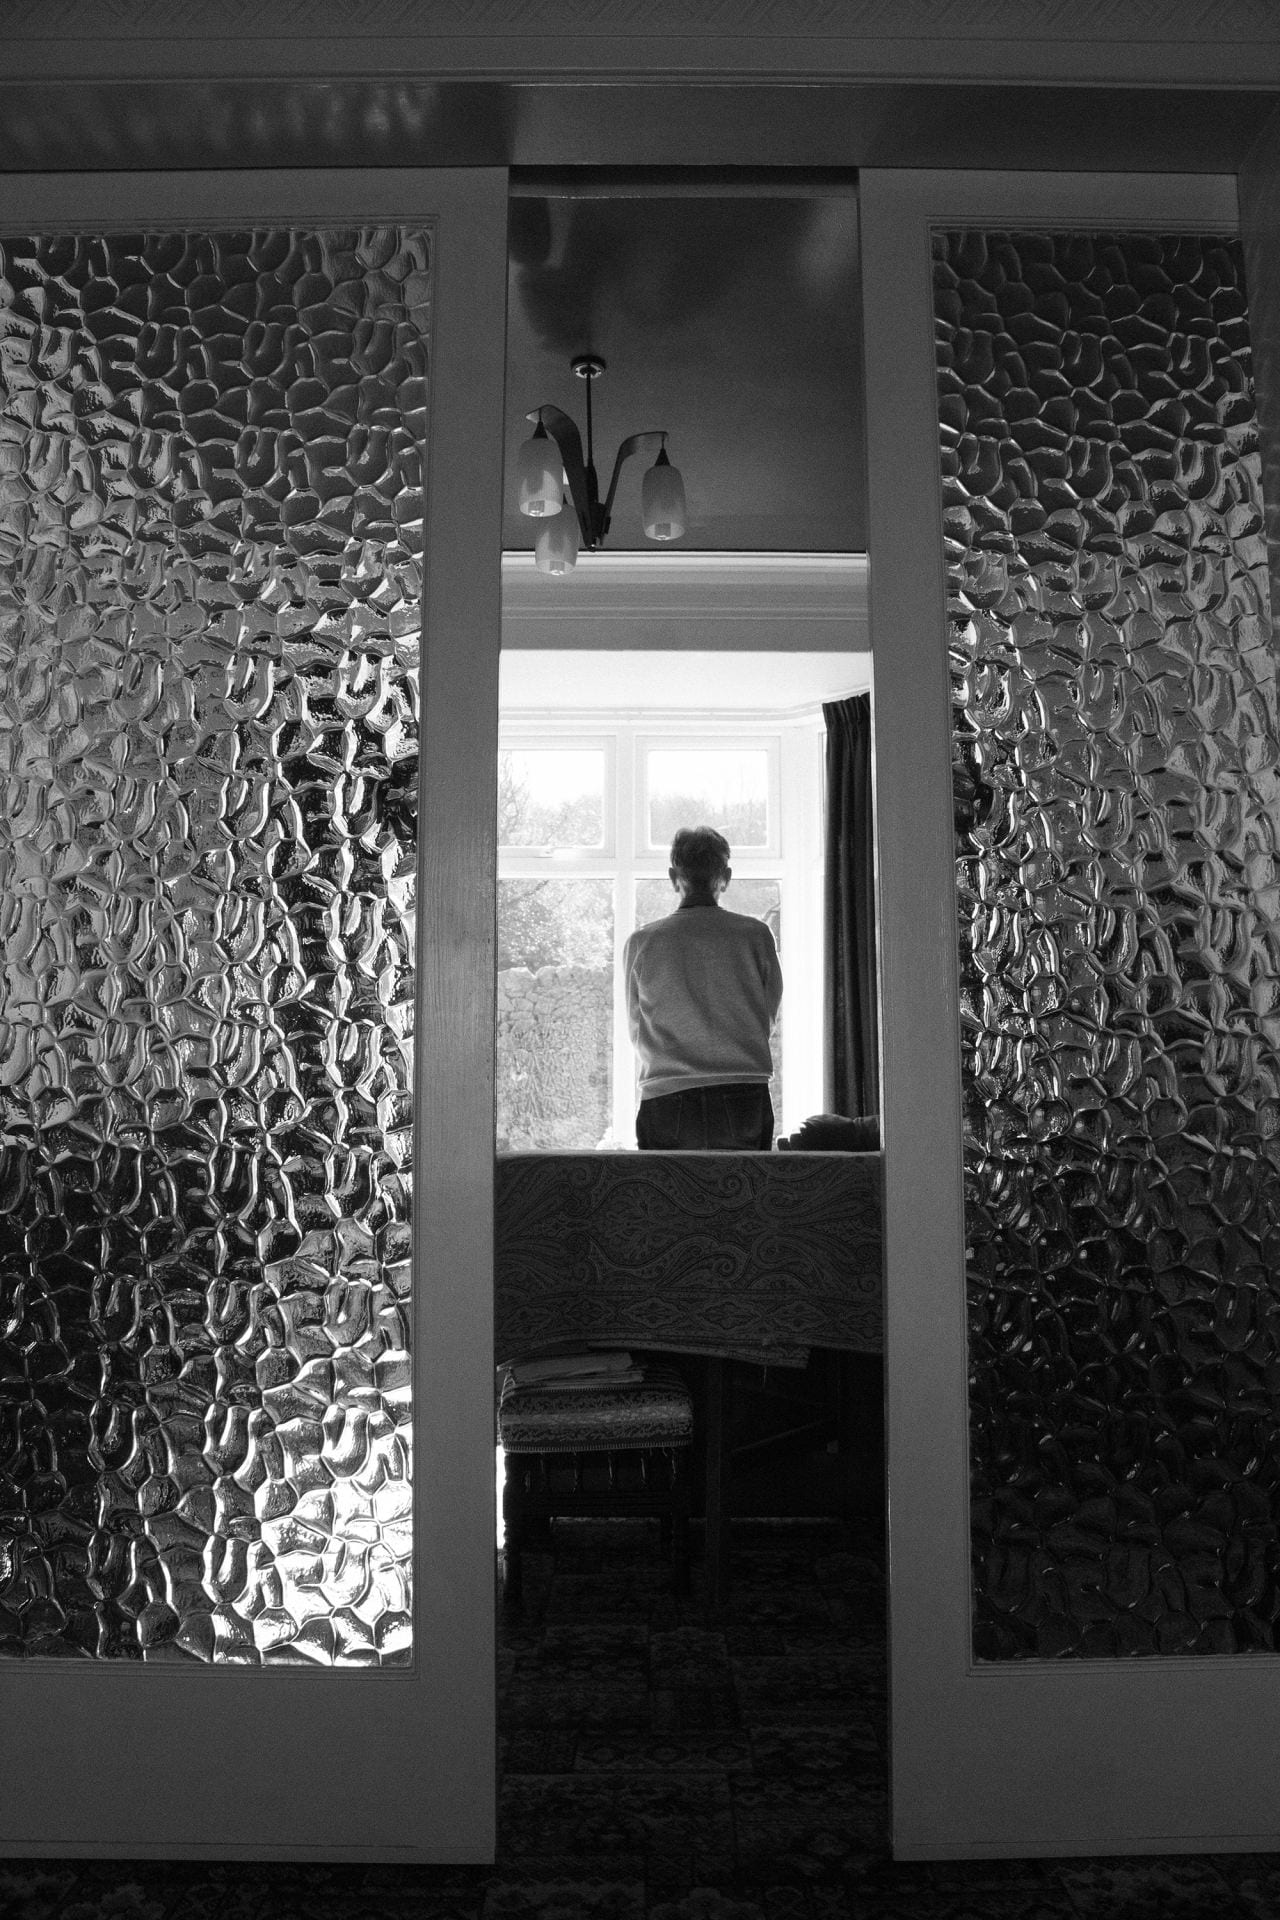 Black and white photograph of man standing by a window.